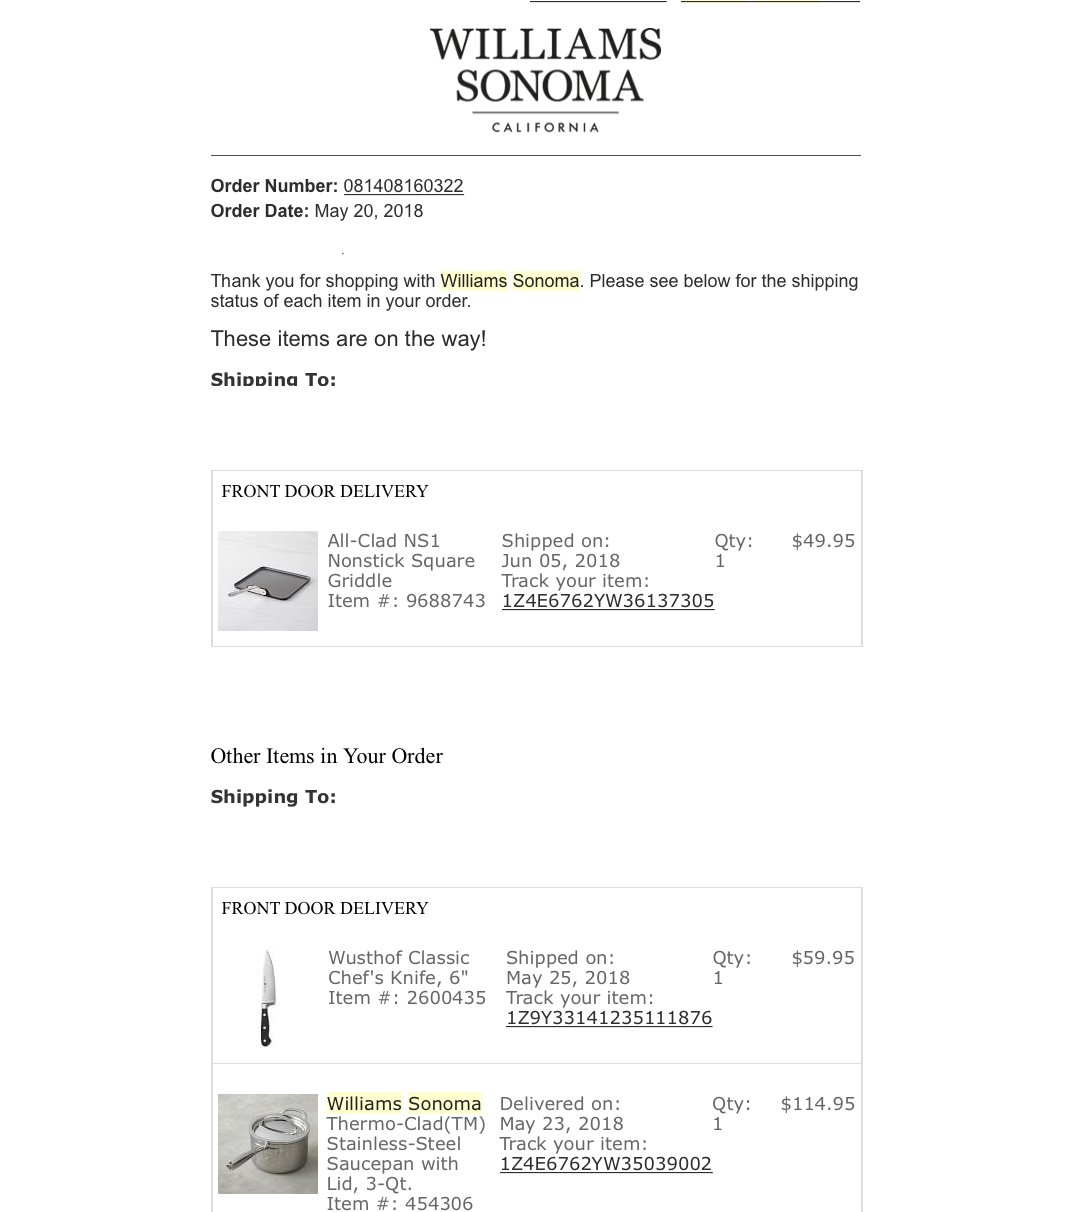 Williams-Sonoma-Confirmation-Email